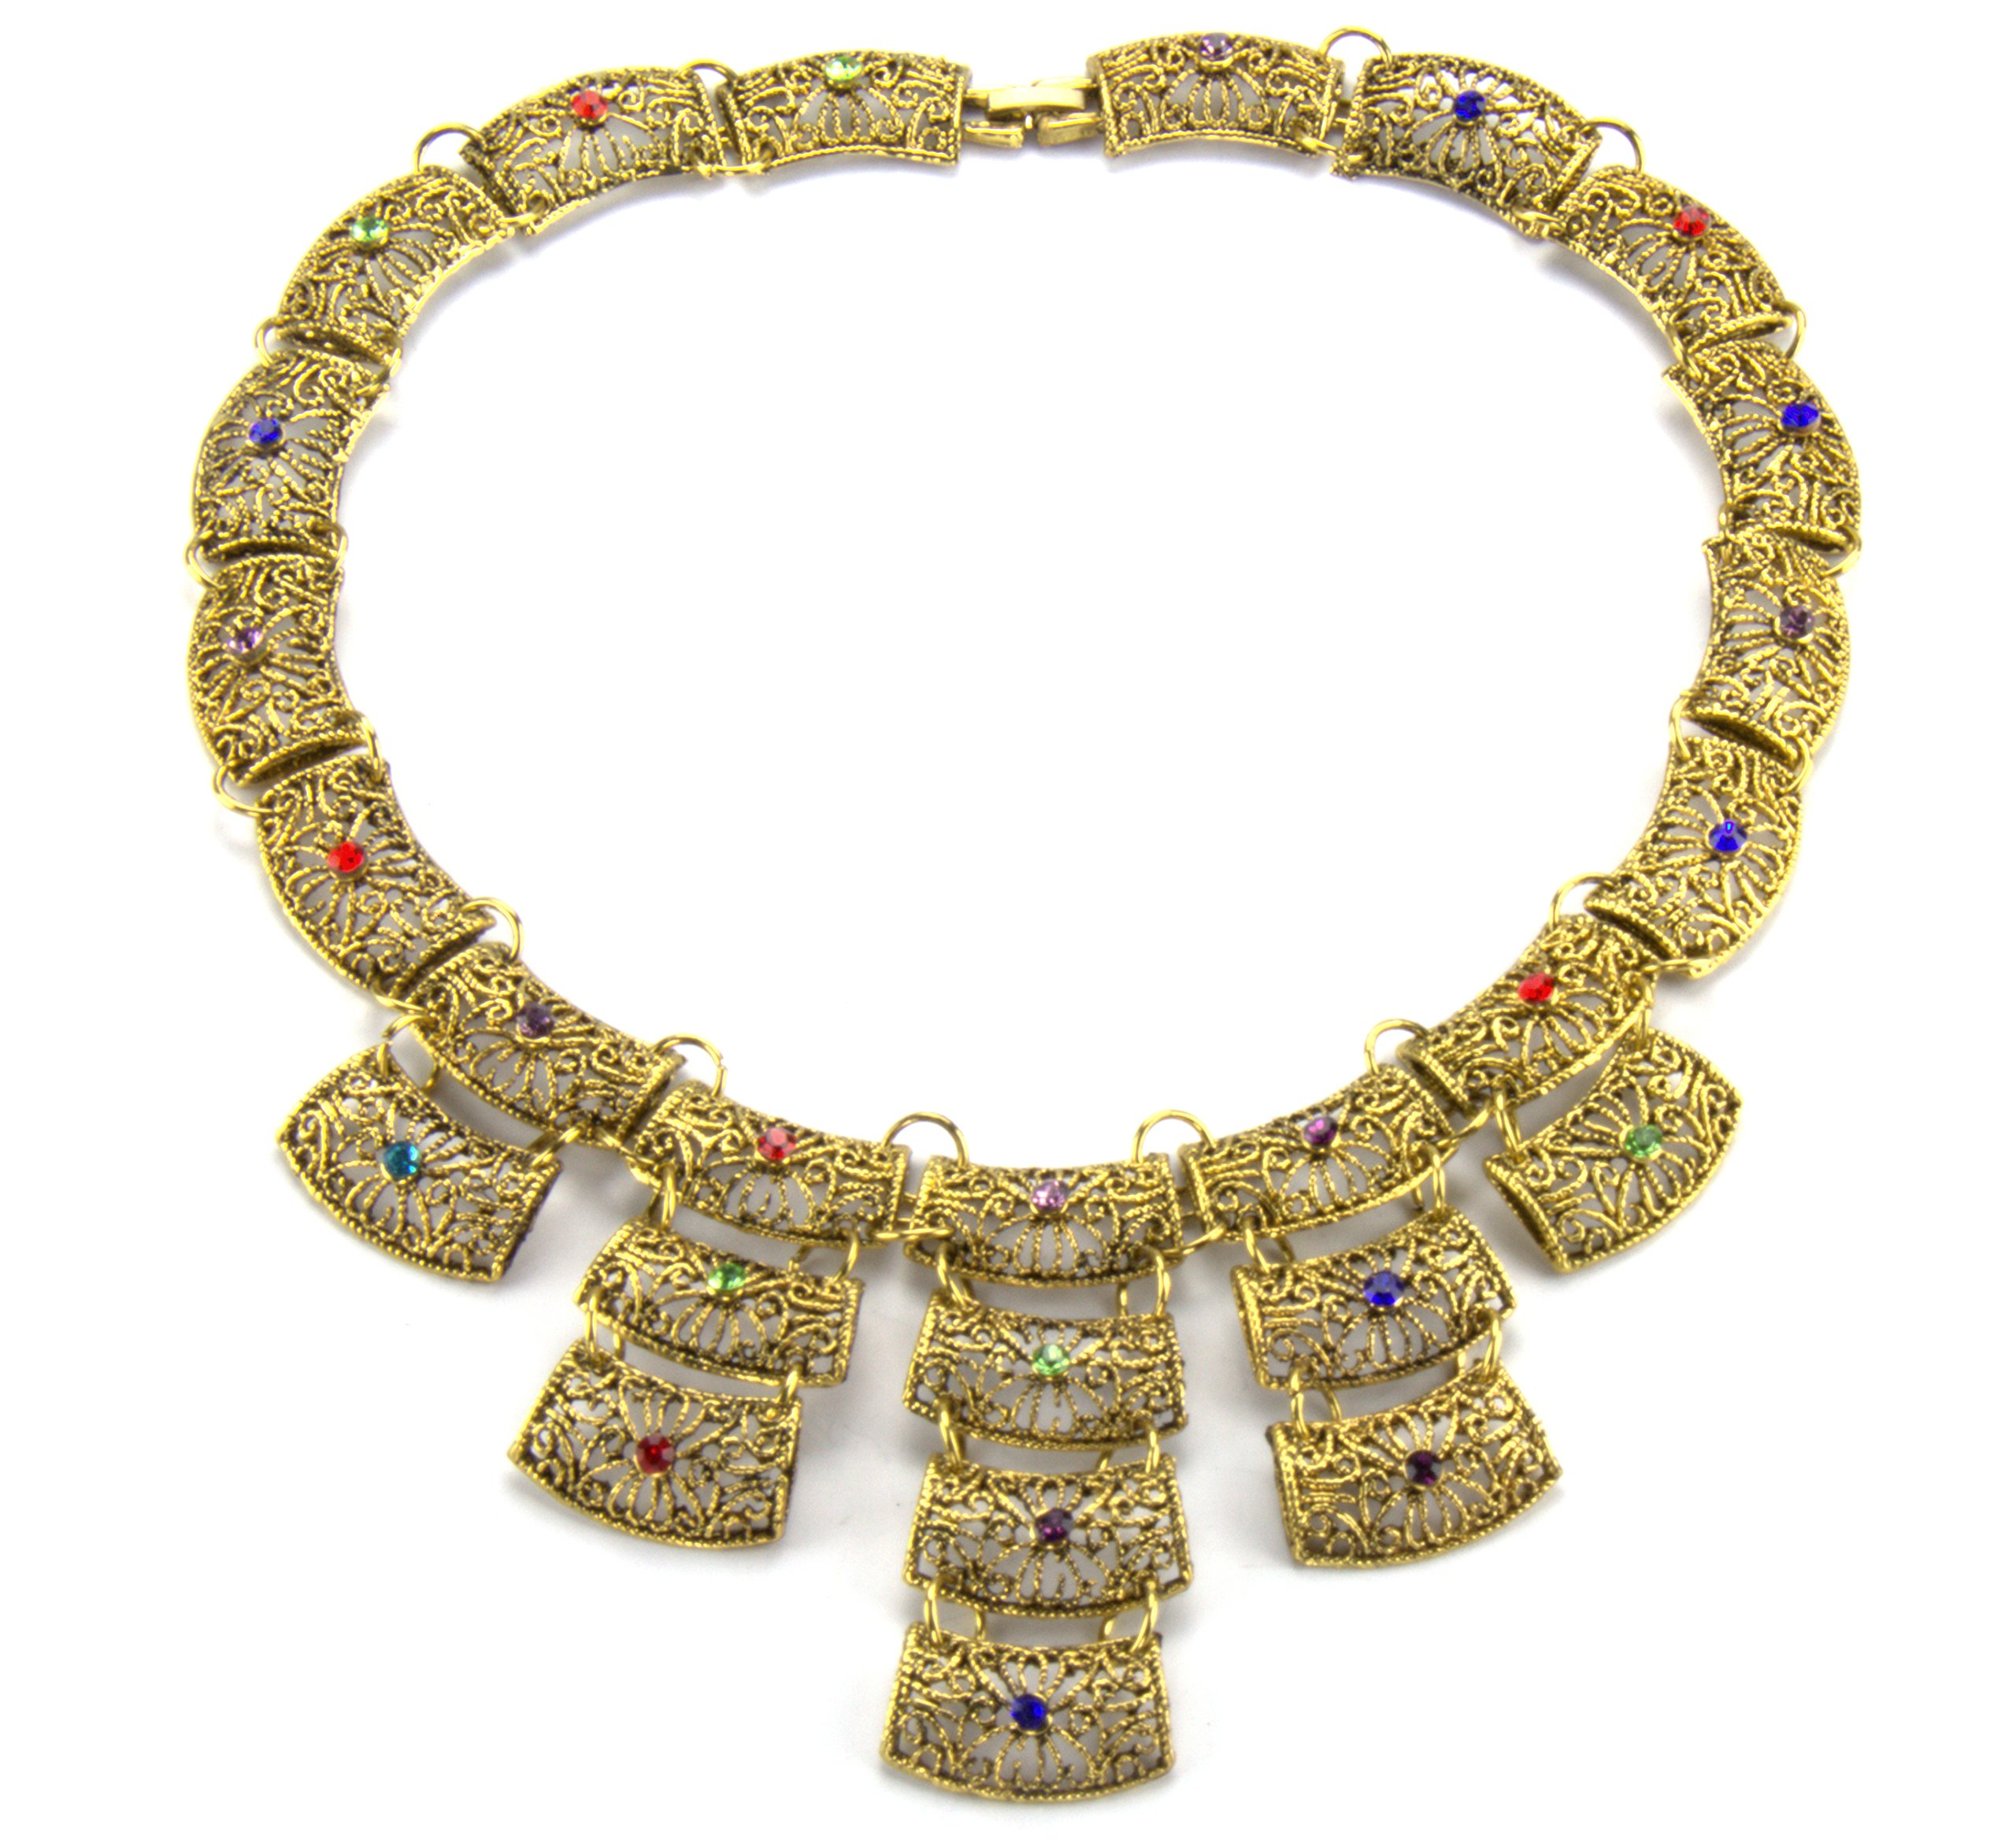 18'' Inch Antiqued Gold Finish Filigree Floral Flower Retro Vintage Art Deco Chunky Statement Necklace, Blue Red & Green Crystal CZ Accents